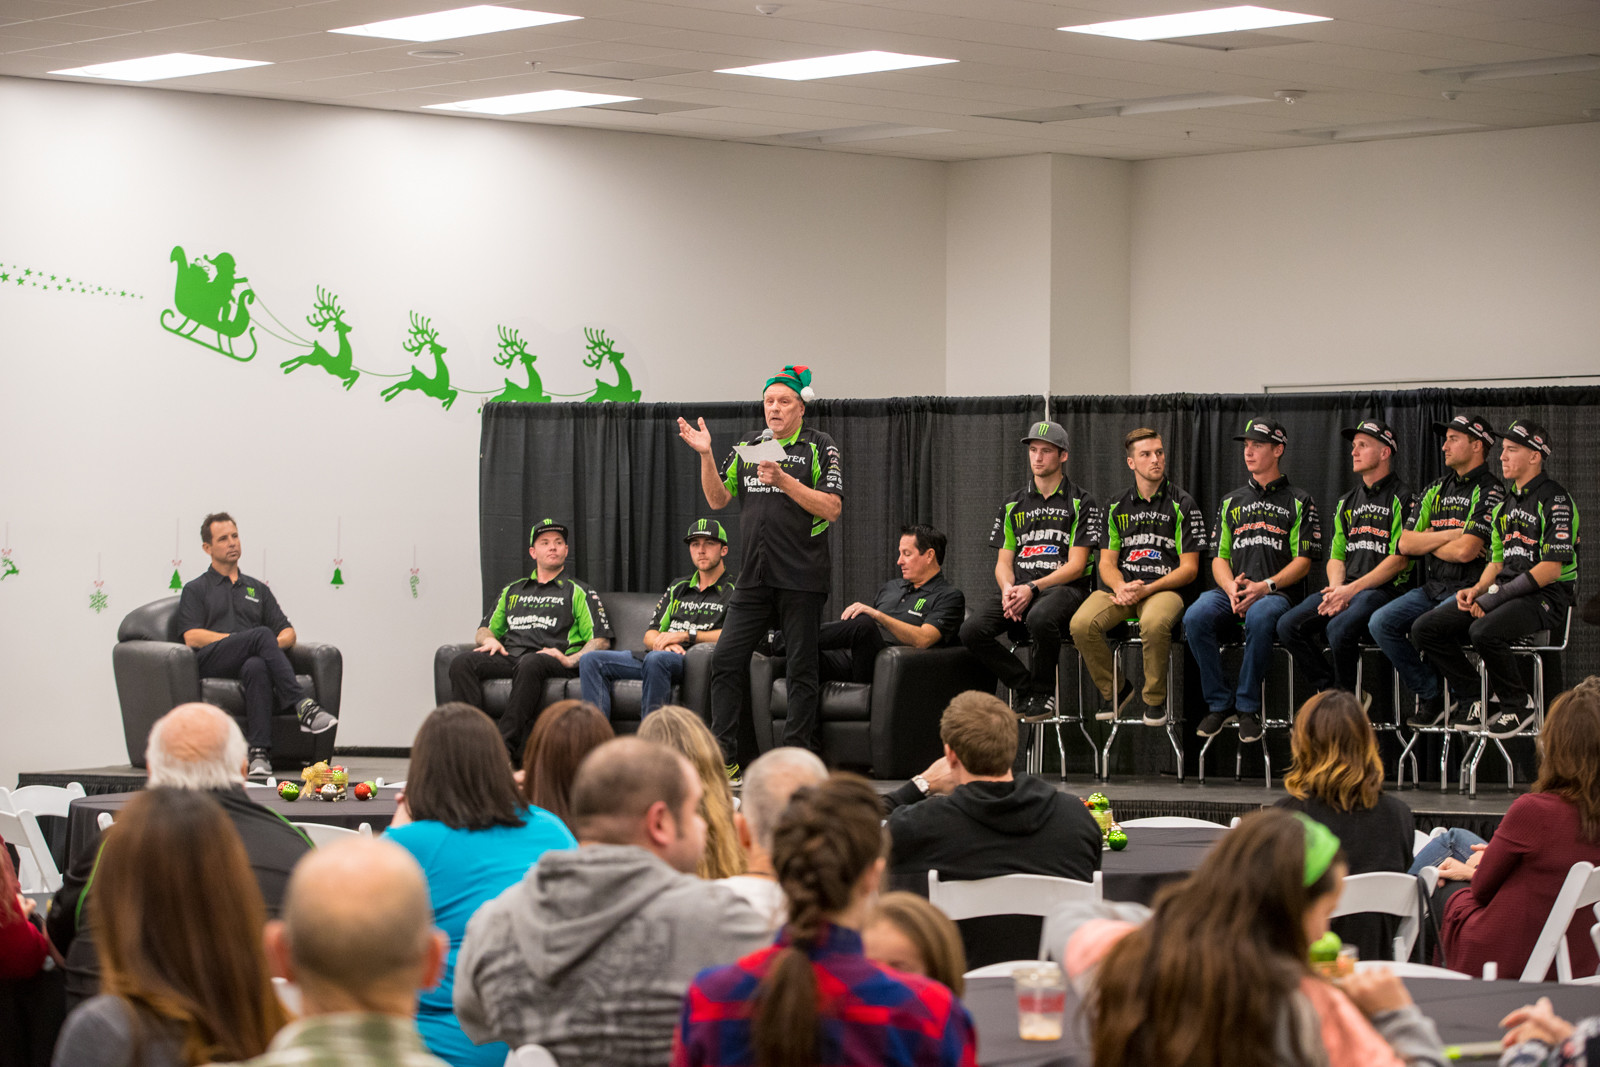 The night kicked off with a few words from management and the riders on each team, each sharing their goals for the new year.